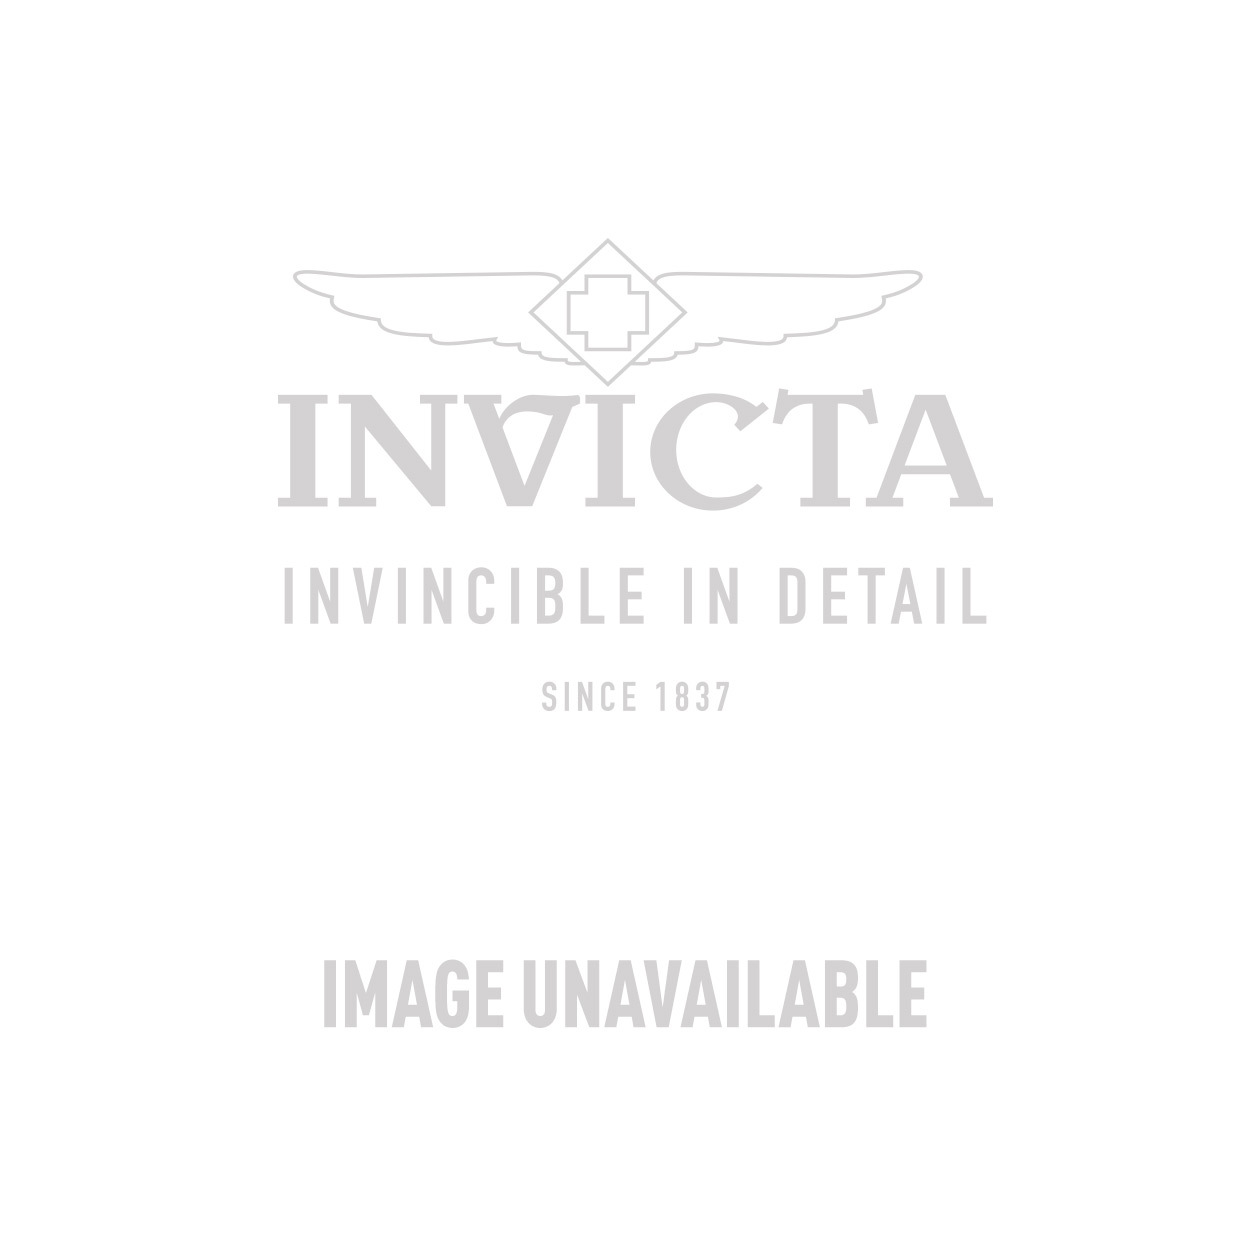 Invicta Pro Diver Swiss Movement Quartz Watch - Stainless Steel case Stainless Steel band - Model 0069